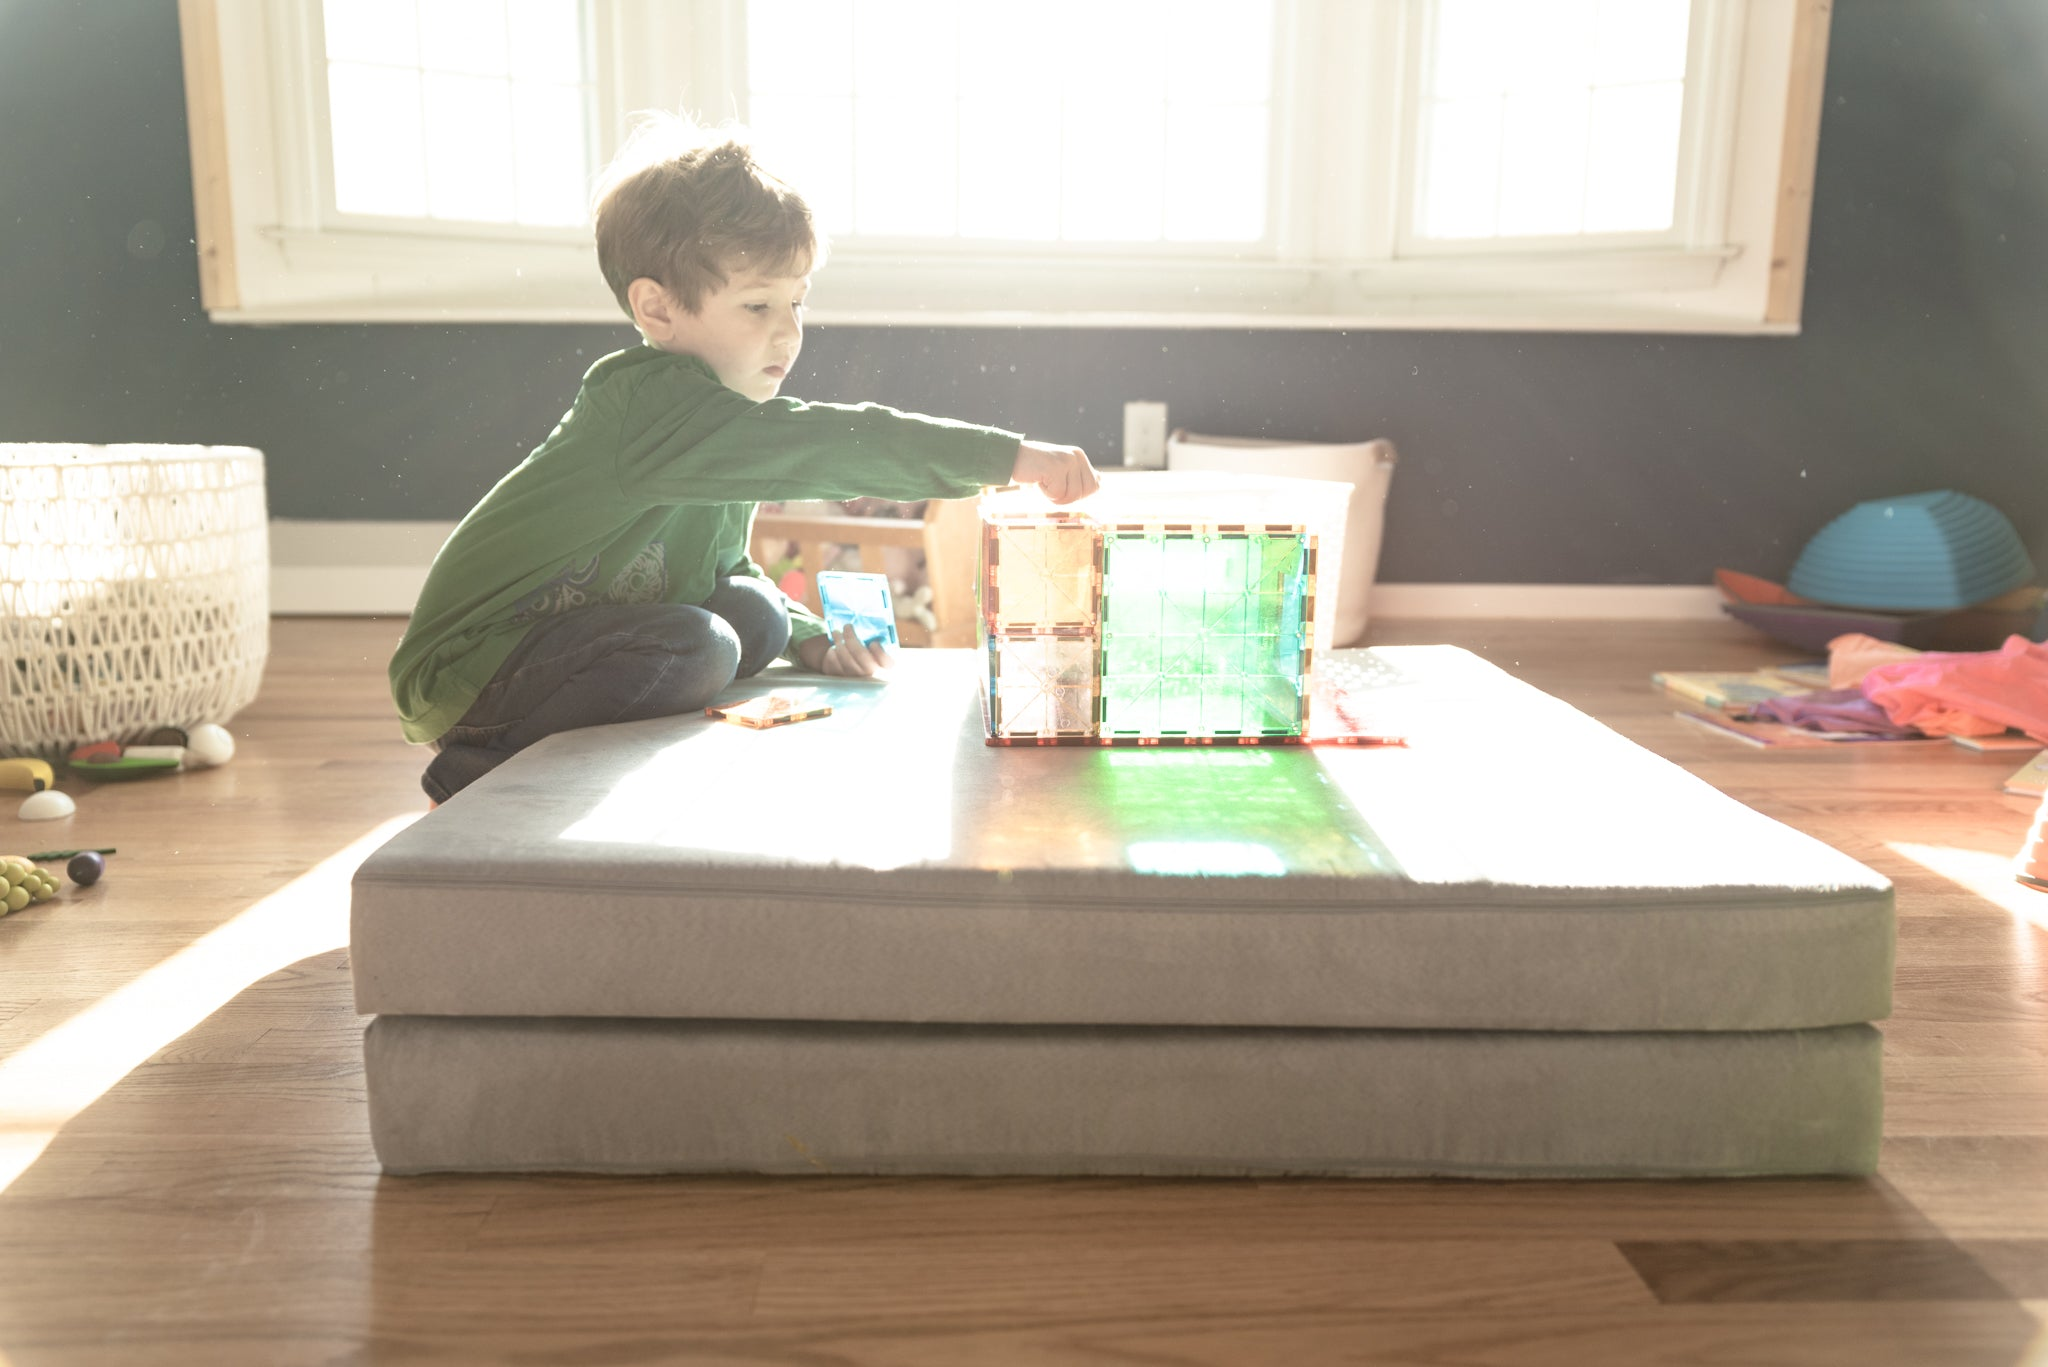 Child kneeling by folded Nugget cushion, reaching for magnetic tiles placed on cushion